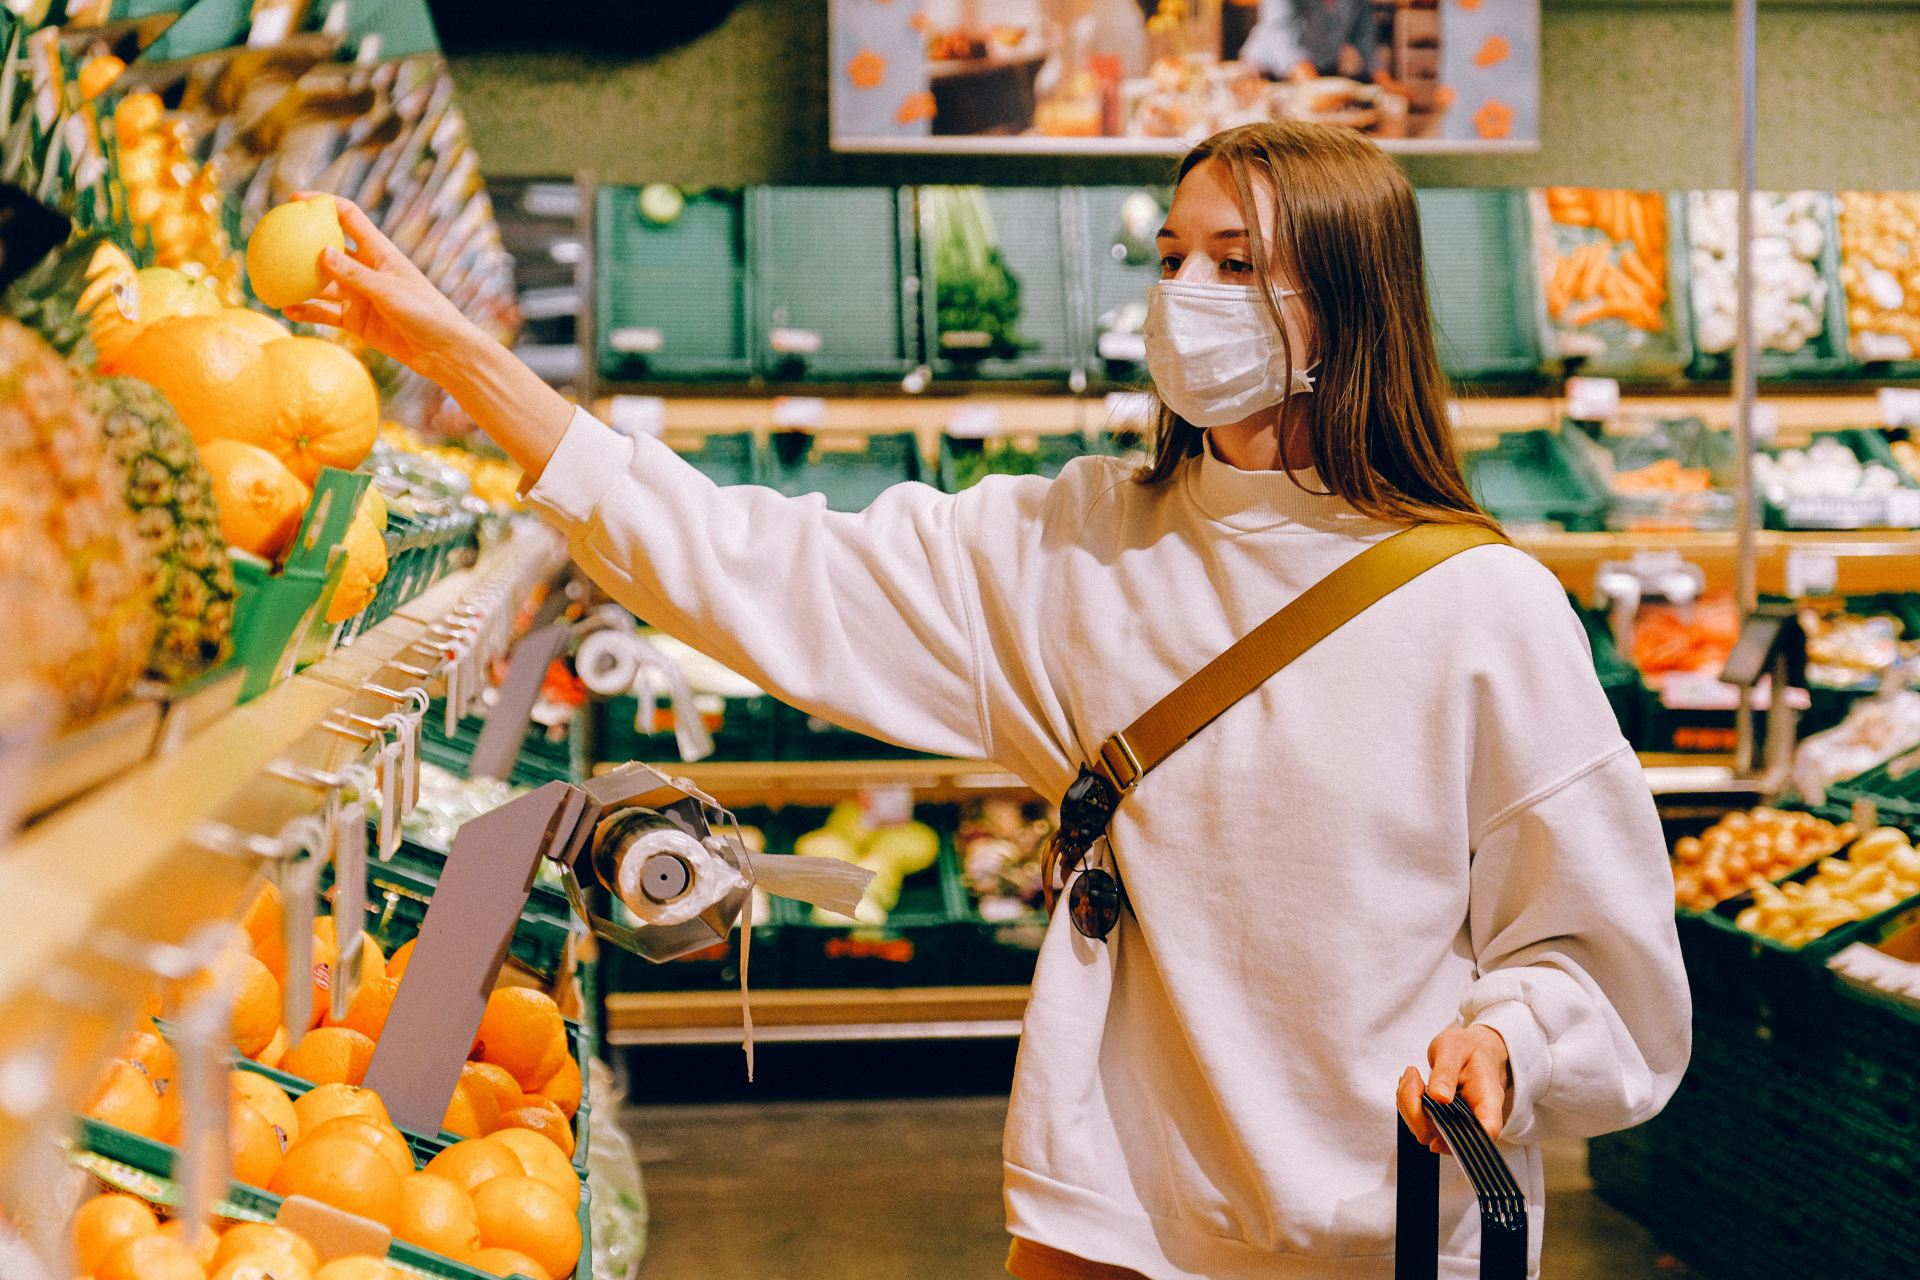 Woman wearing a mask in the supermarket buying fruit